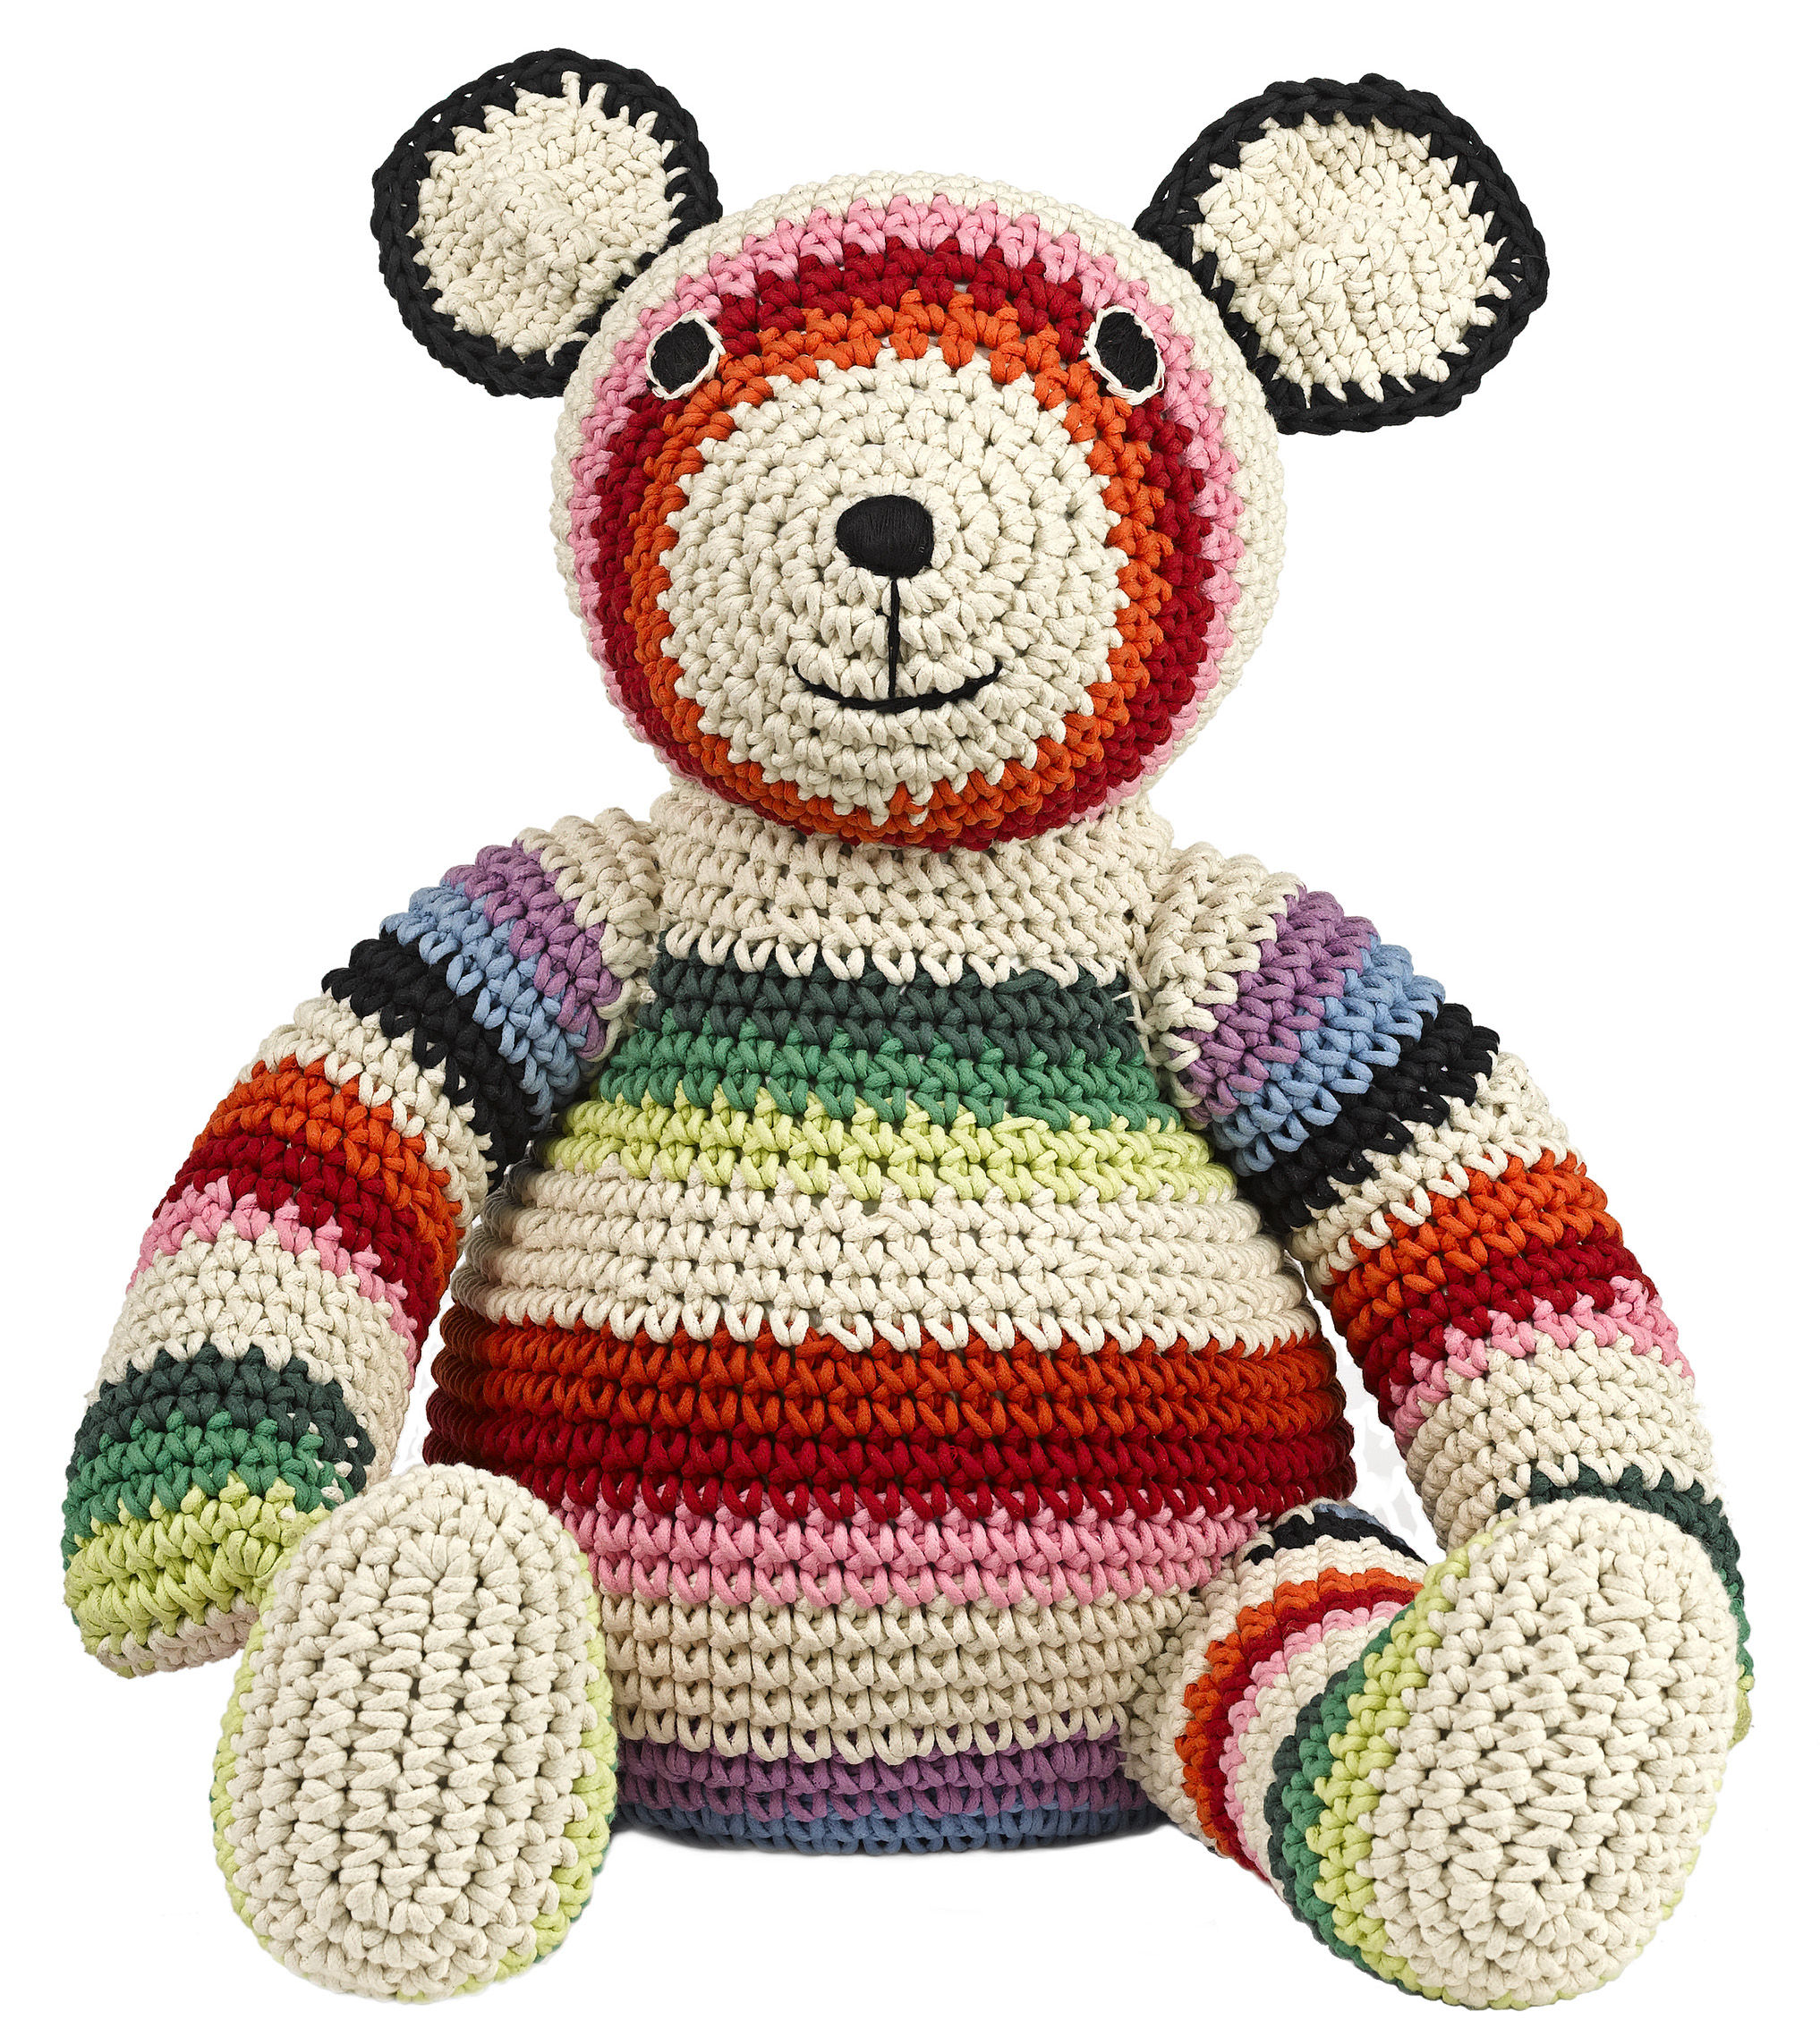 mama teddy cuddly toy crochet cuddly toy mix by anne claire petit. Black Bedroom Furniture Sets. Home Design Ideas